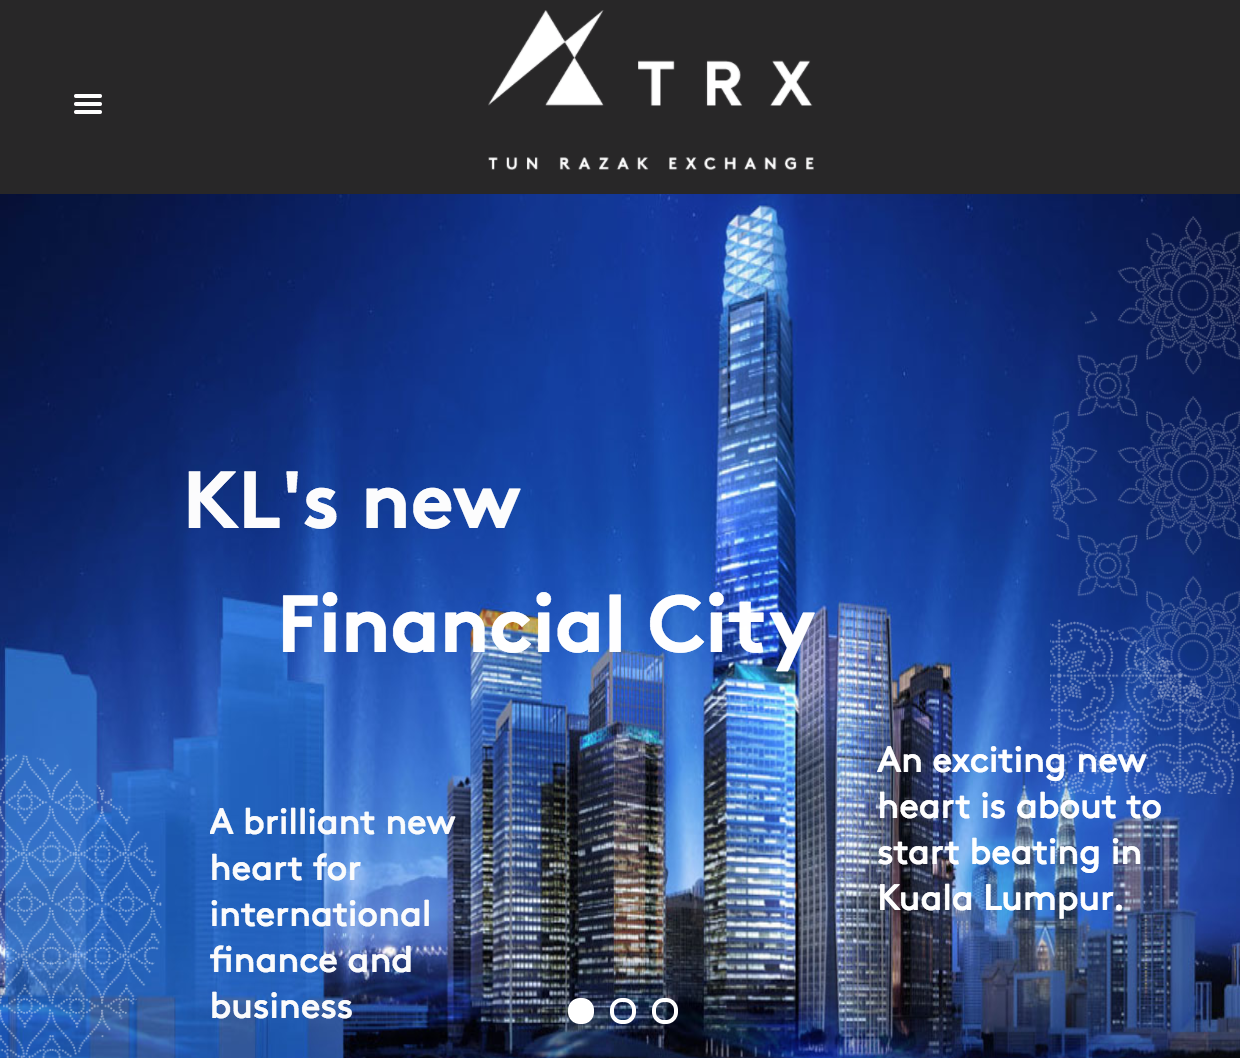 Image from TRX